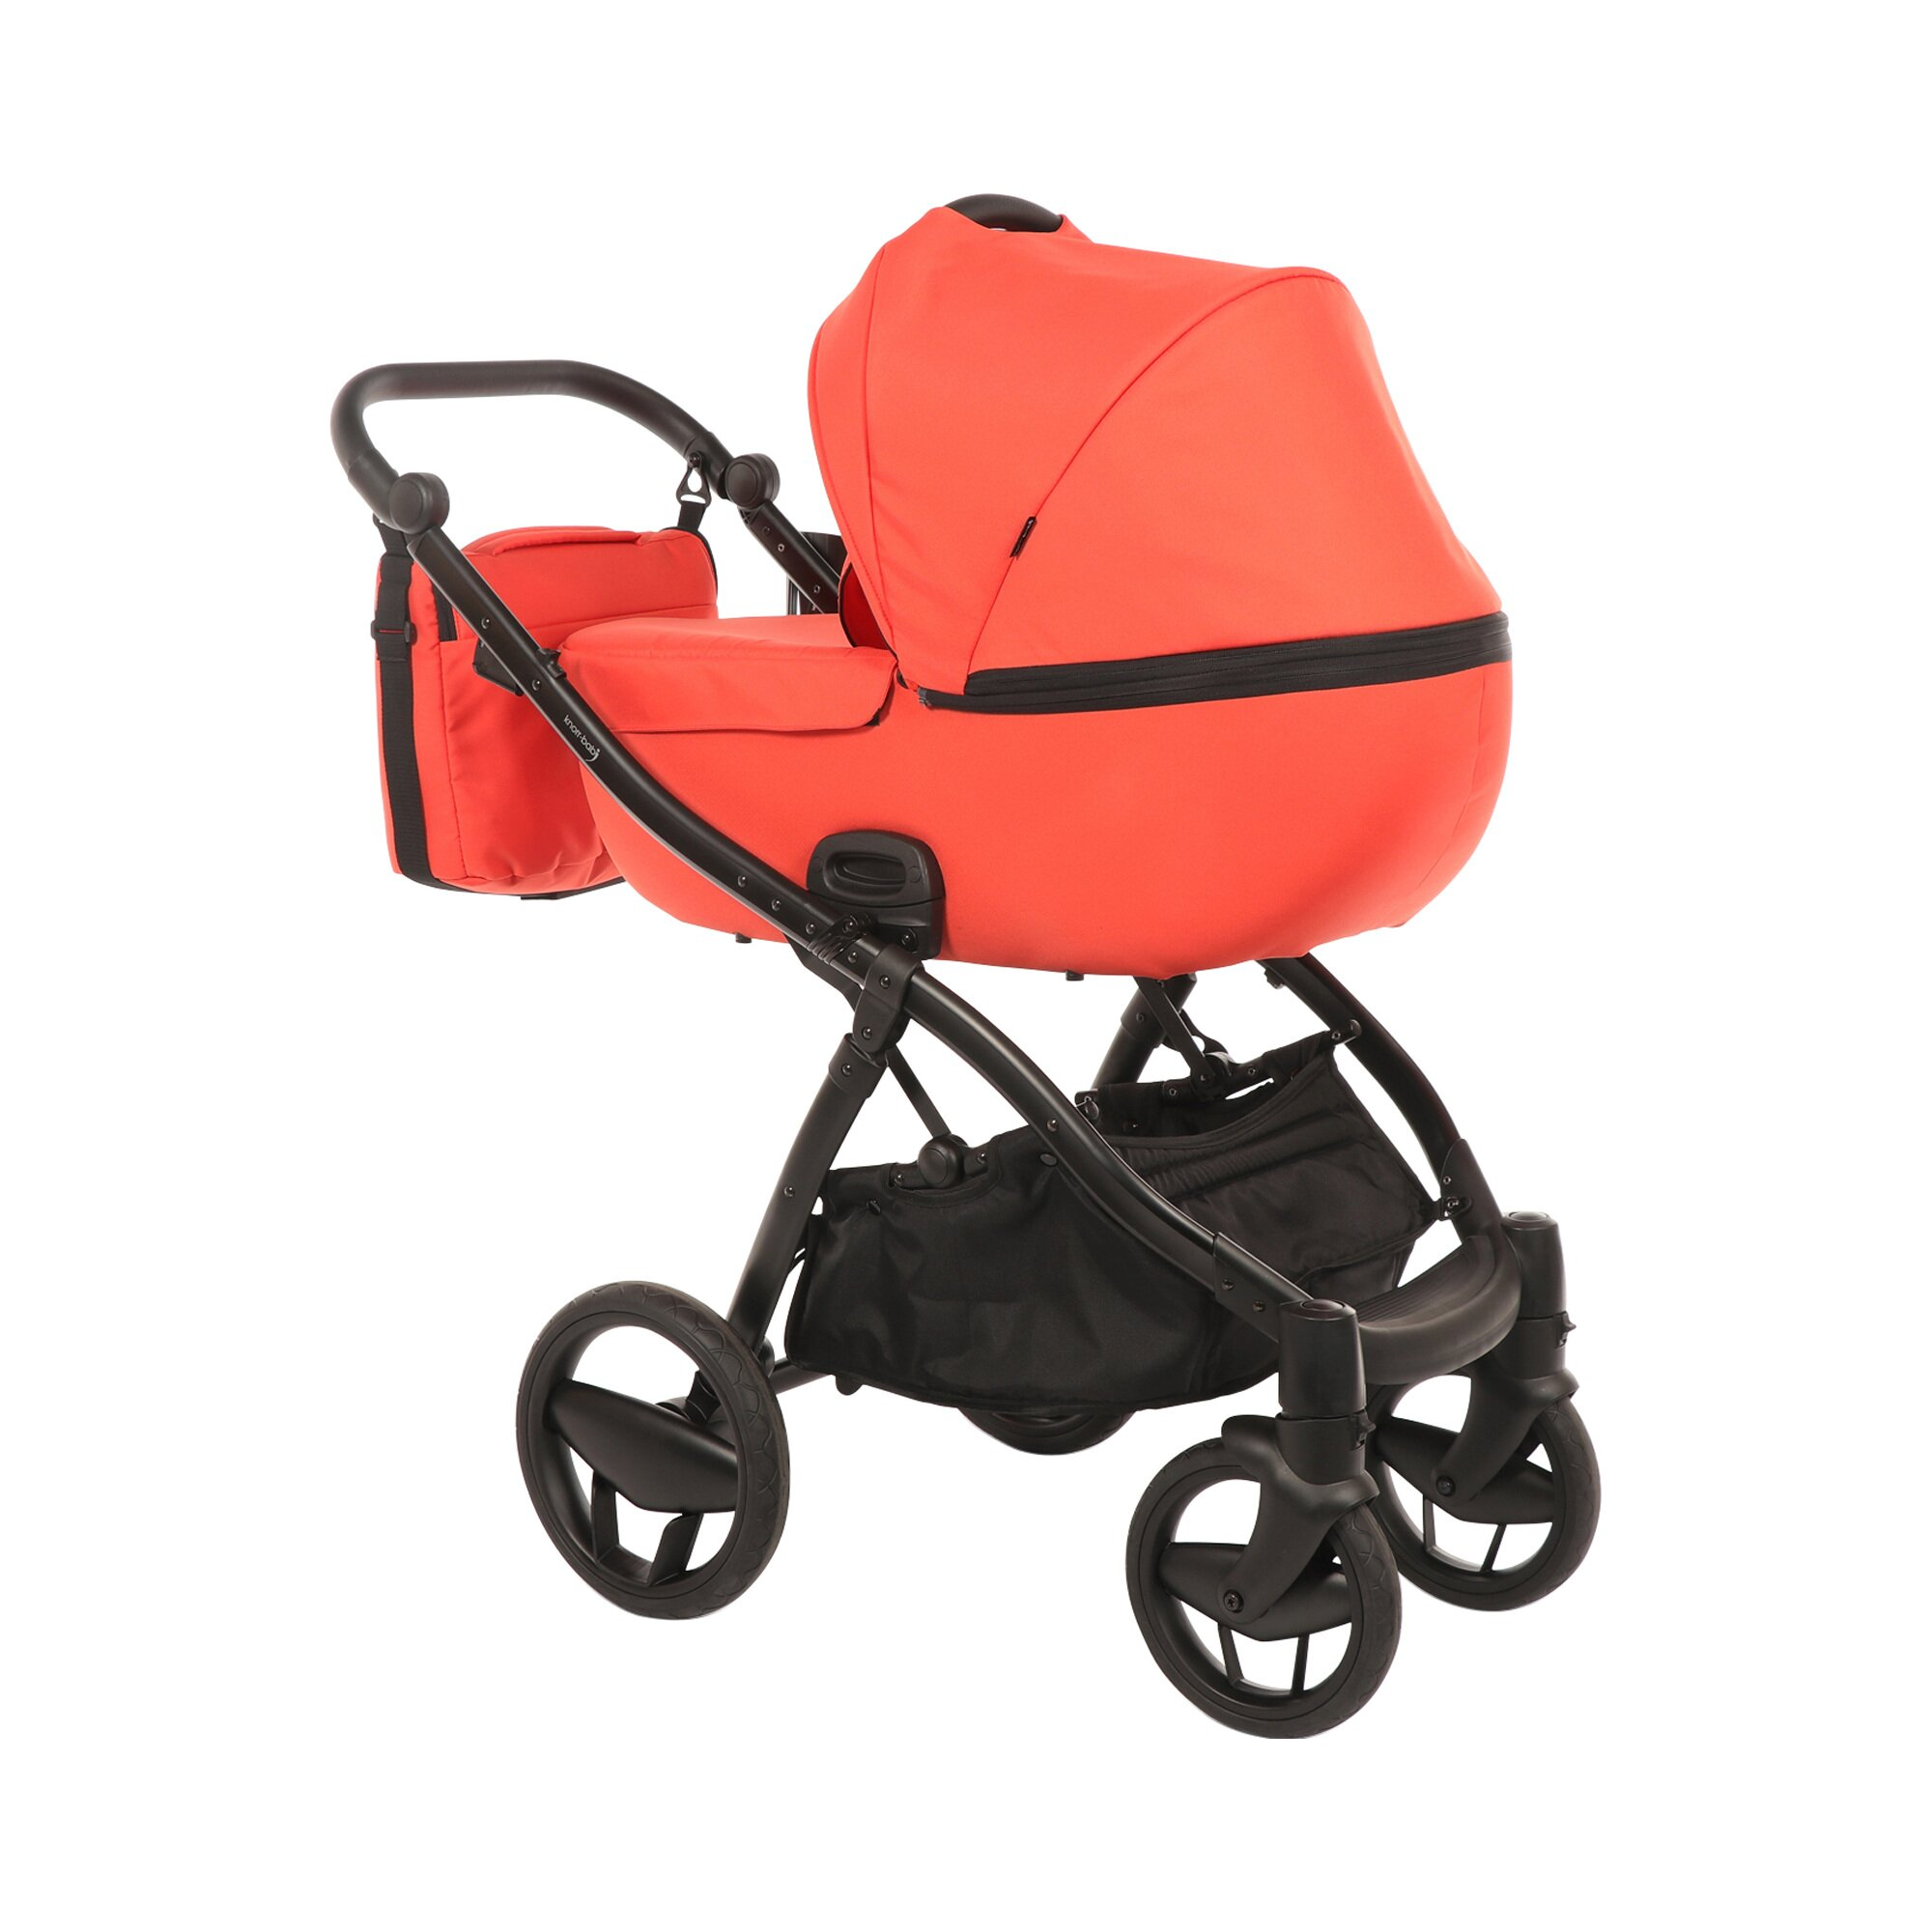 knorr-baby-piquetto-kombikinderwagen-orange